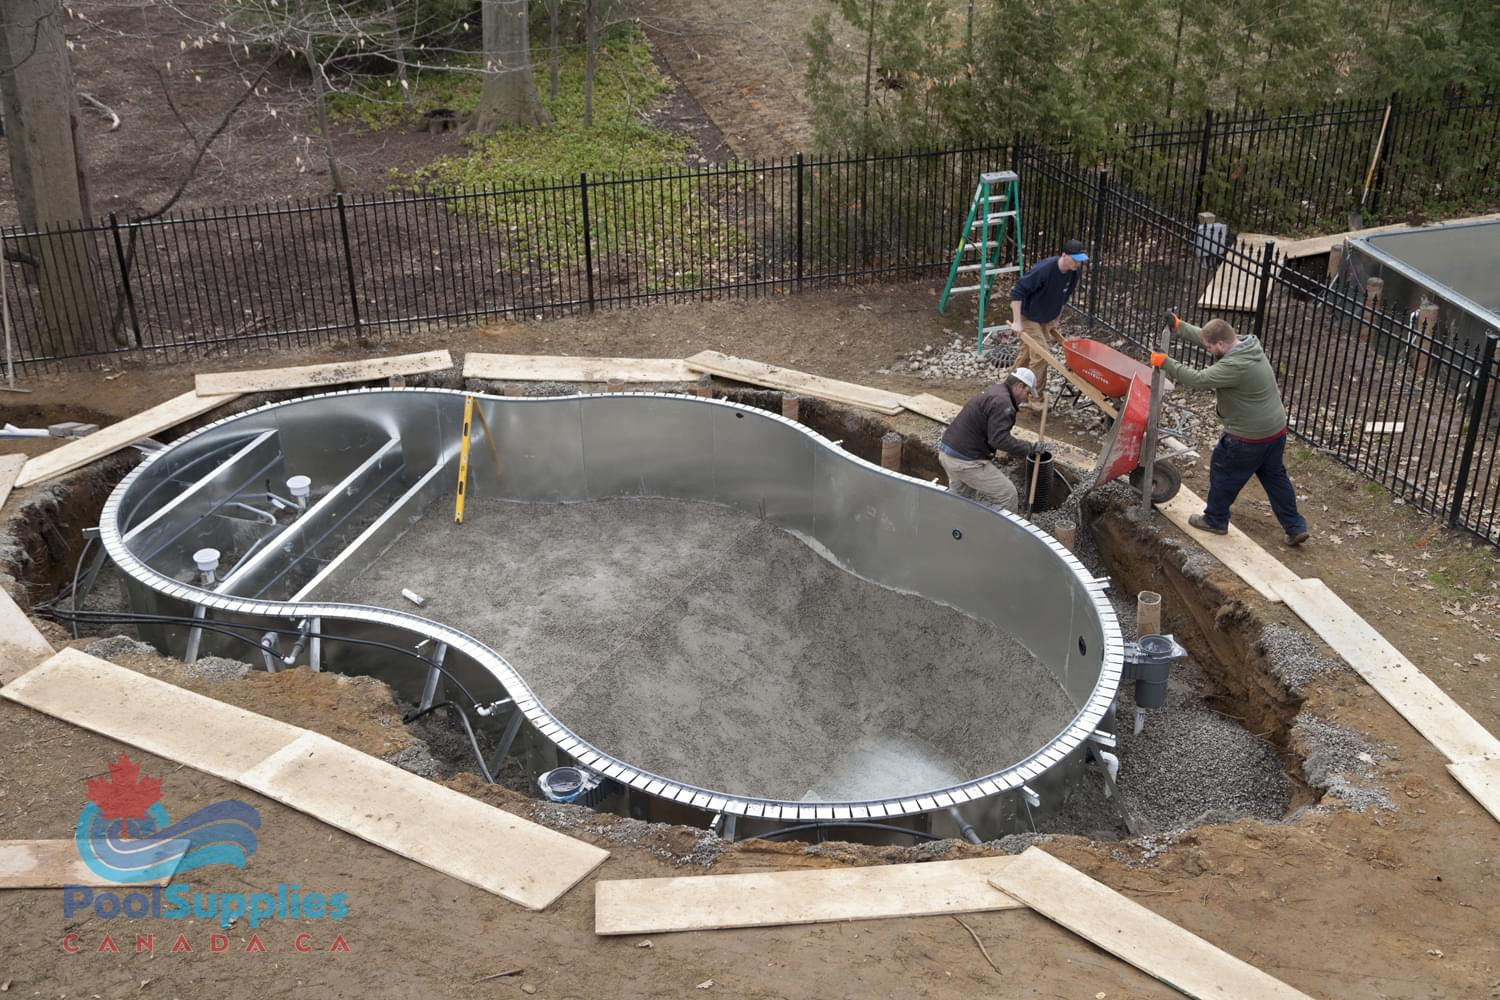 Inground pools pool supplies canada for Best pool buys canada